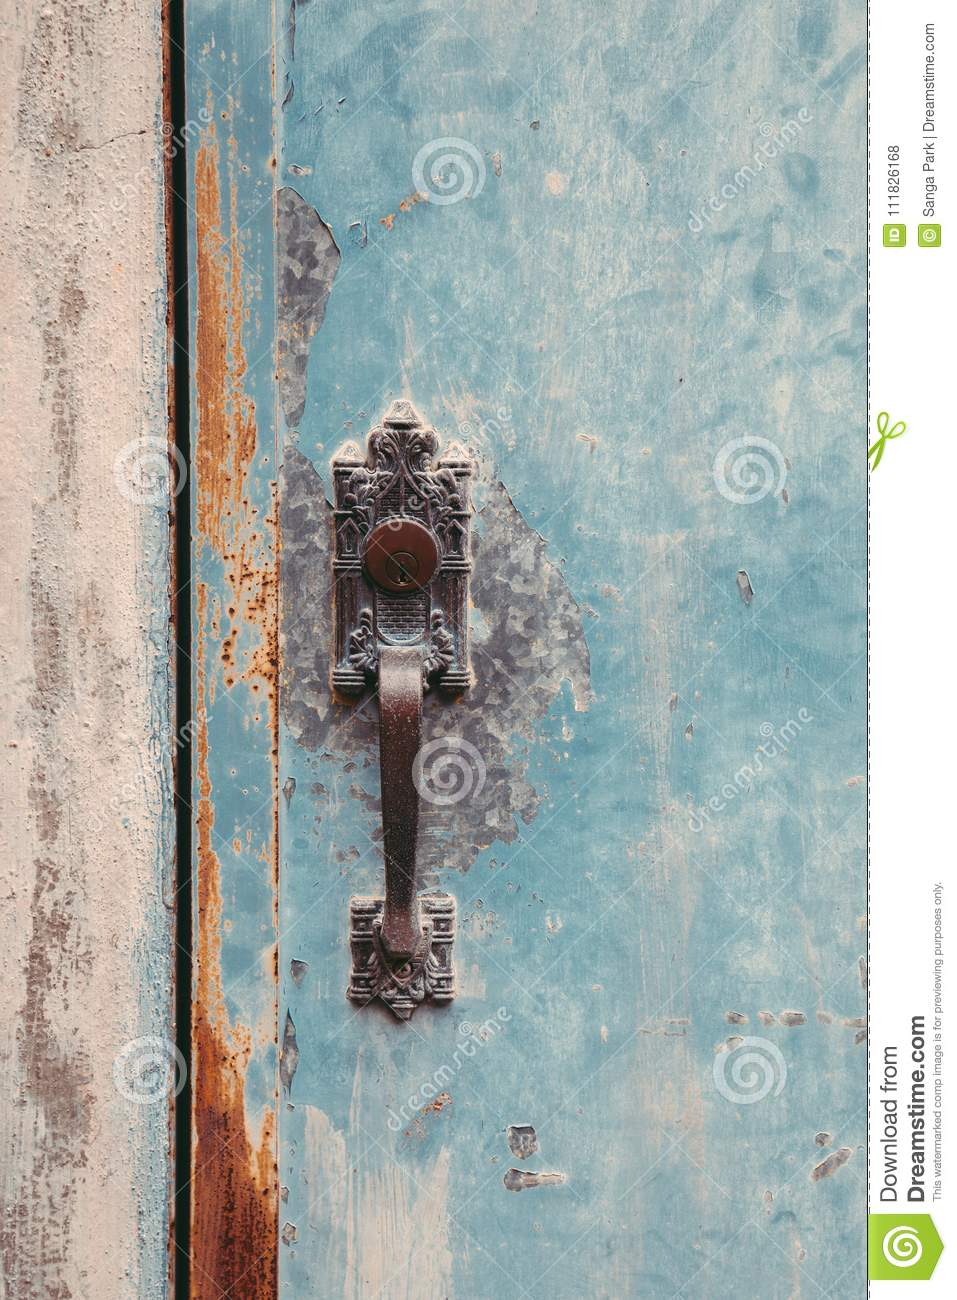 Vintage Style Door And Knob Stock Photo Image Of Abstract Closed